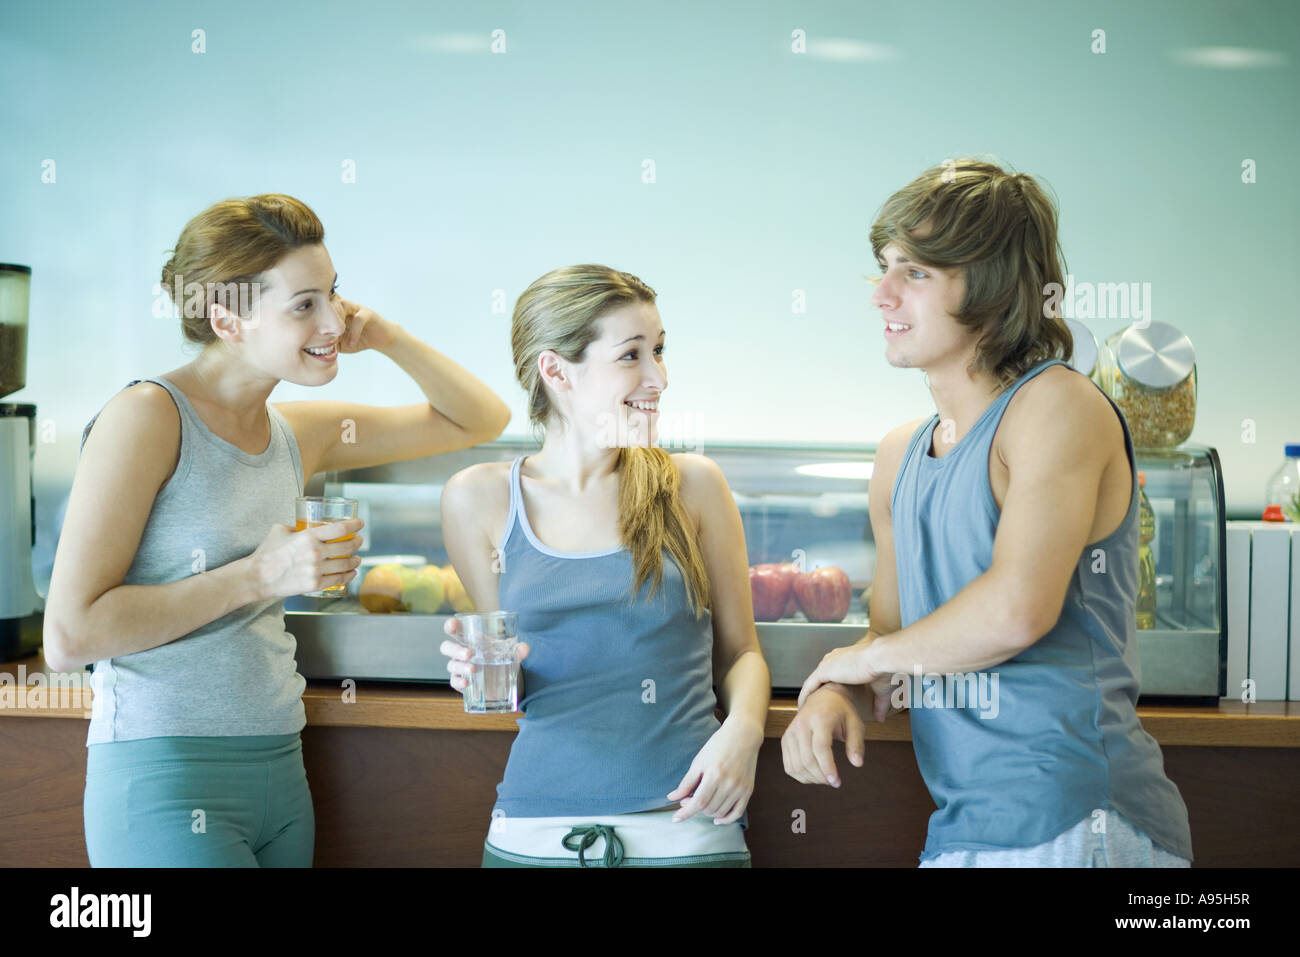 Young adults wearing exercise clothes, standing in cafeteria, having healthy snack and chatting - Stock Image